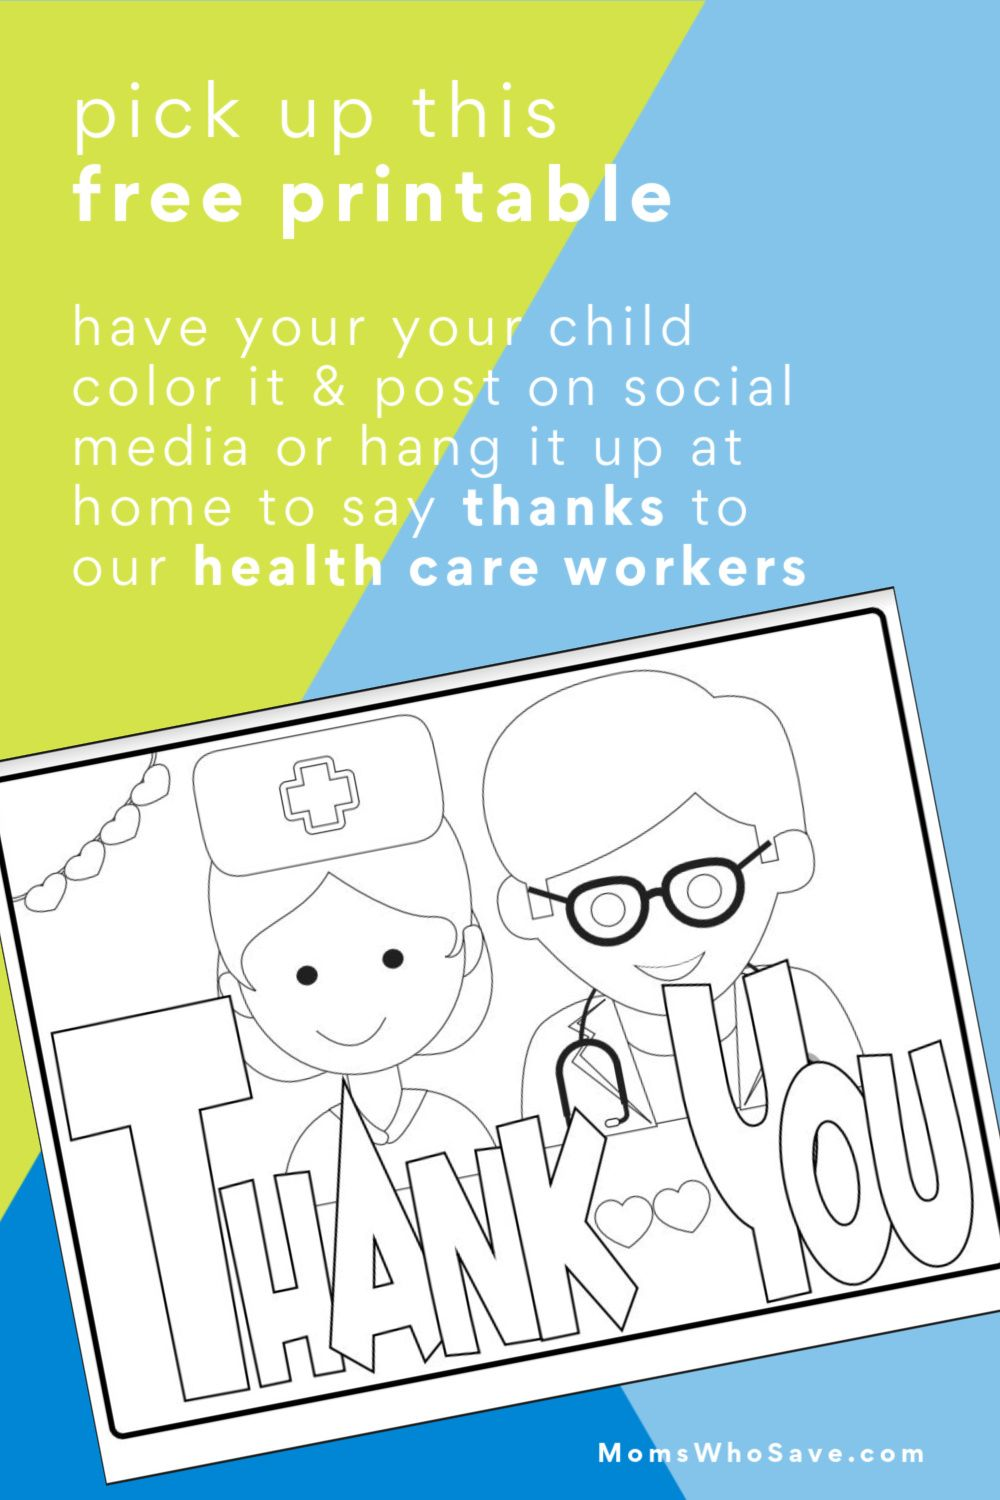 Free Kids Coloring Page Thank You Healthcare Workers Momswhosave Com Free Kids Coloring Pages Coloring For Kids Free Kids